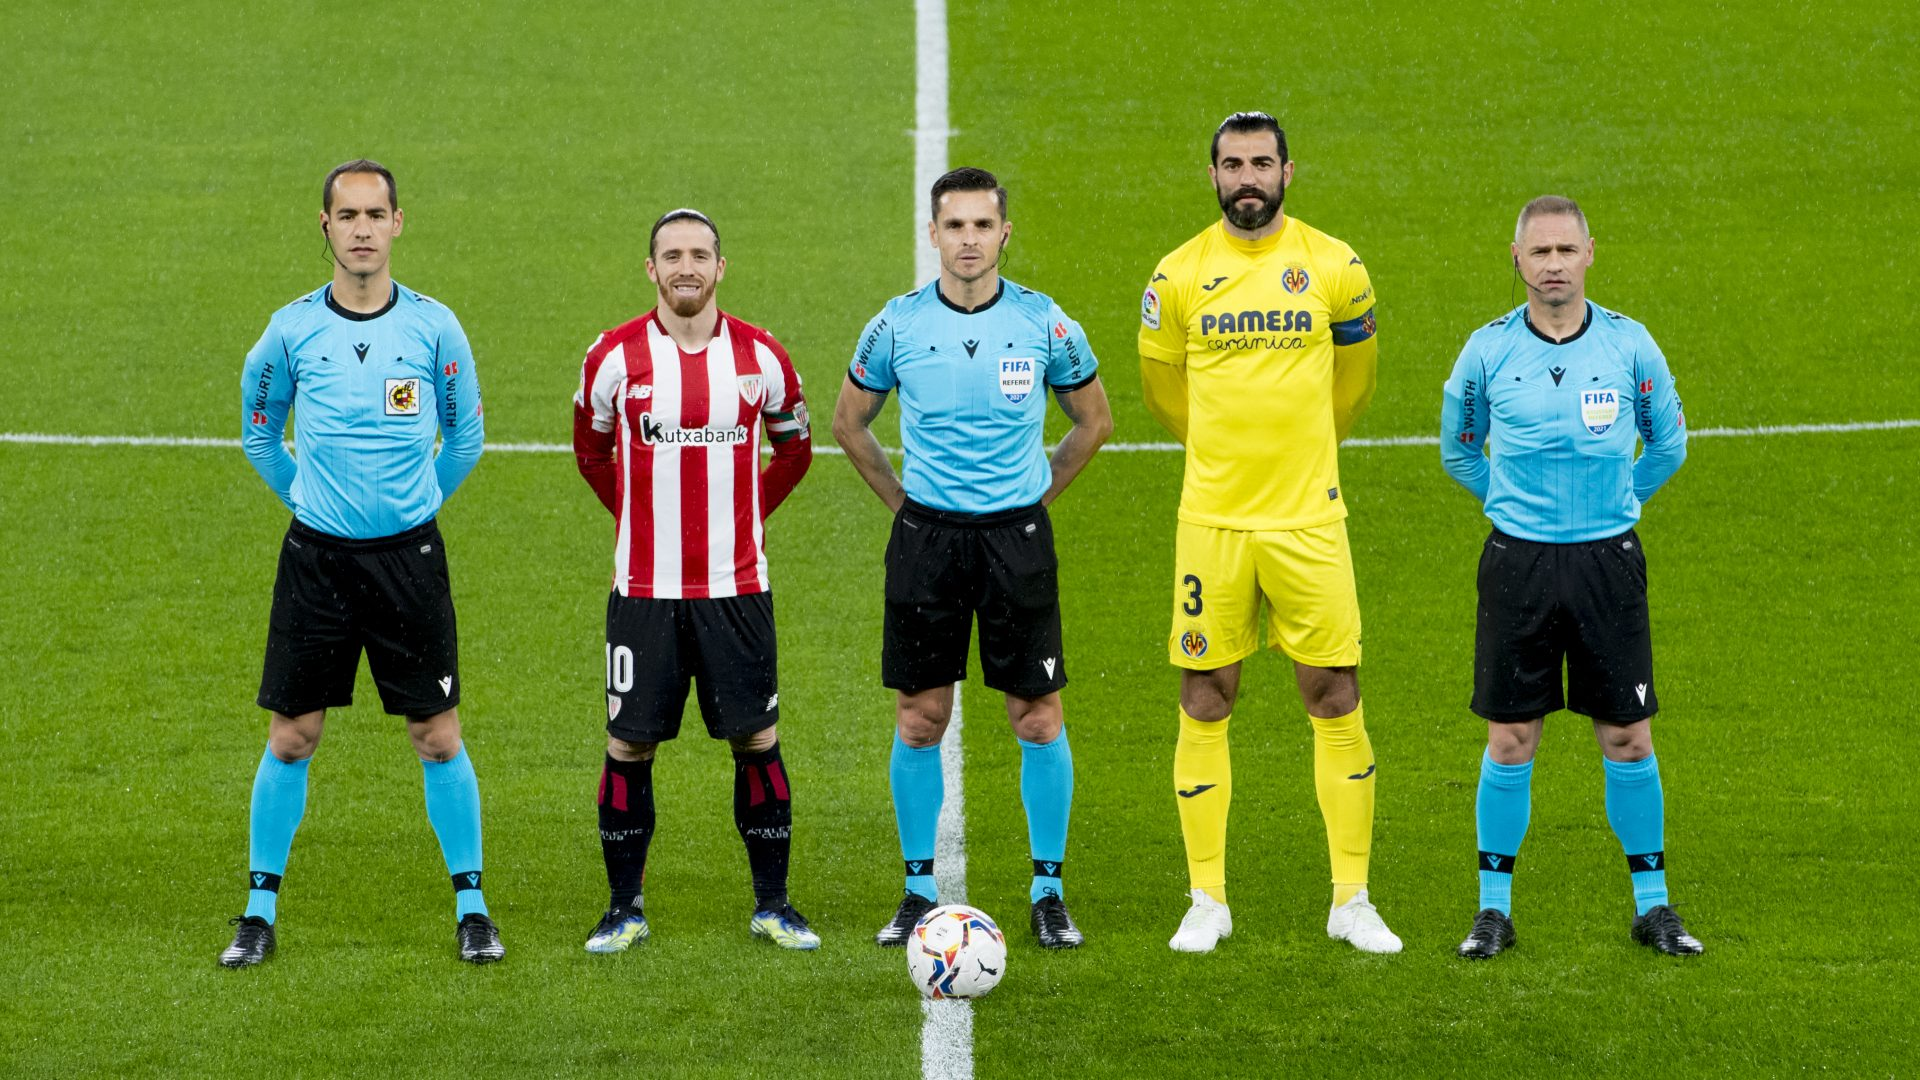 Athletic Club – Villarreal CF (M24 – LaLiga)